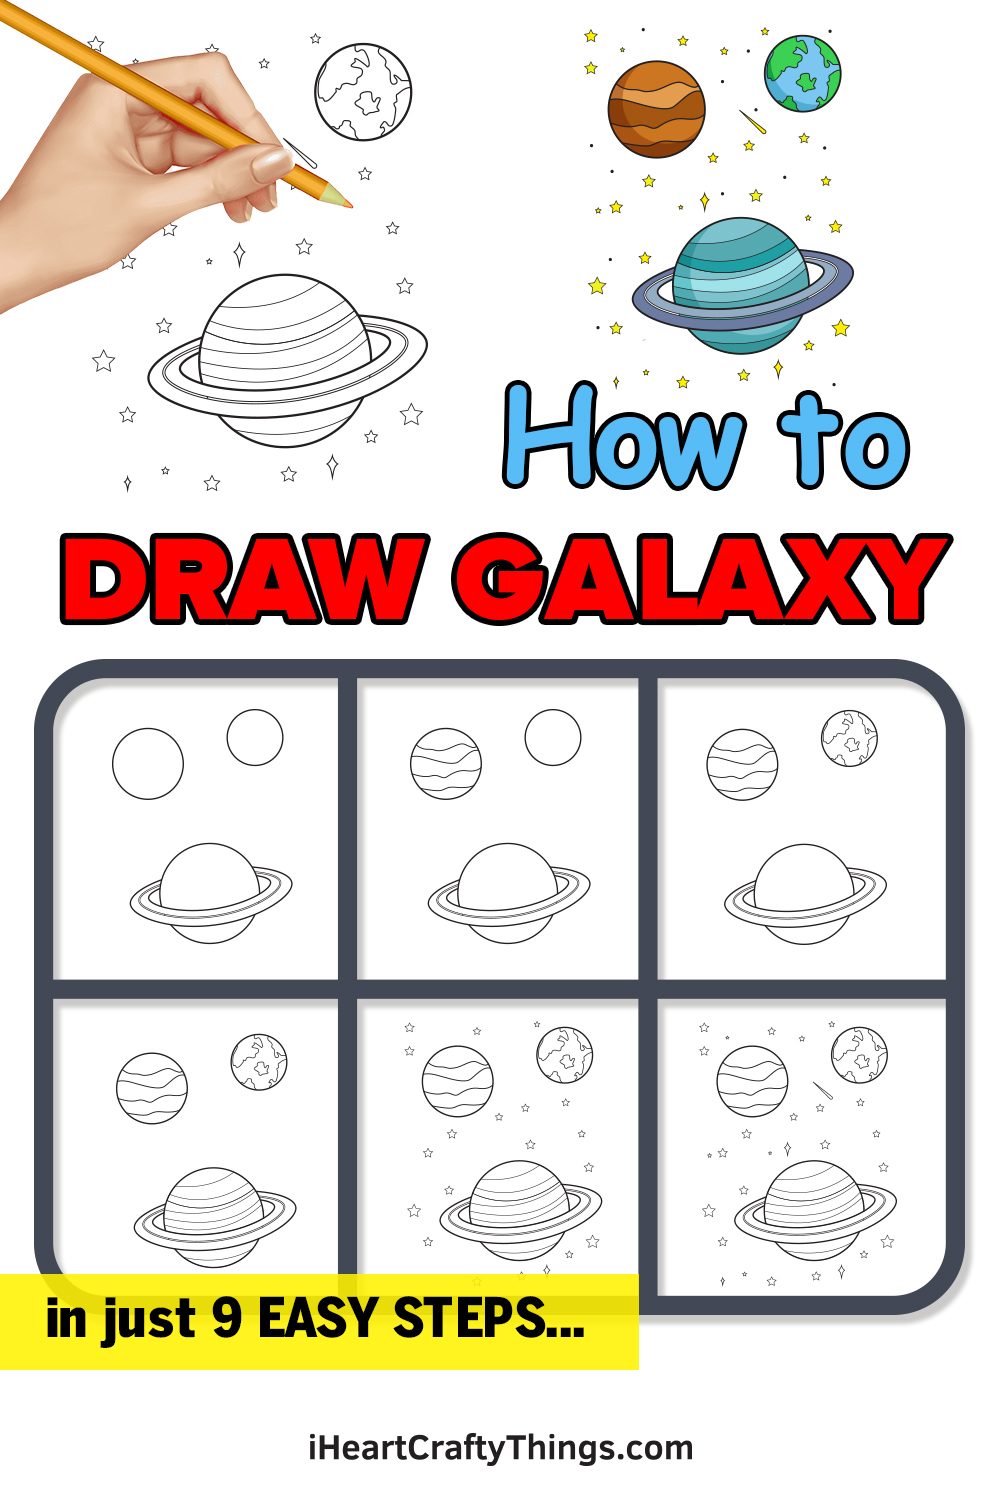 how to draw galaxy in 9 easy steps